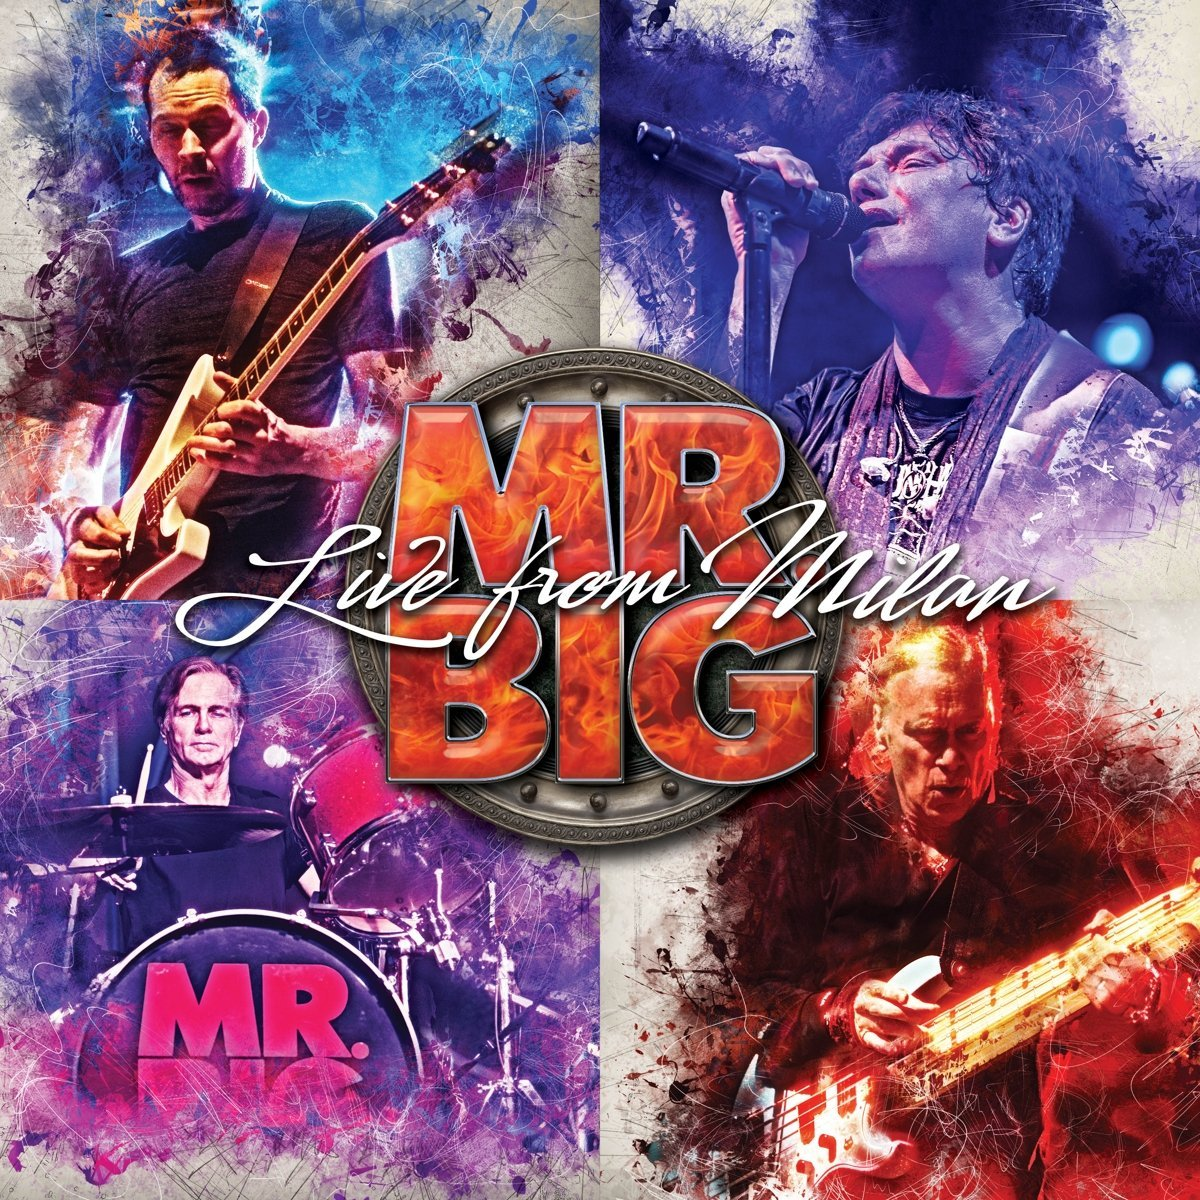 Mr big live from milan nouvel album music surf by k 39 s 207 for Mr big live from the living room